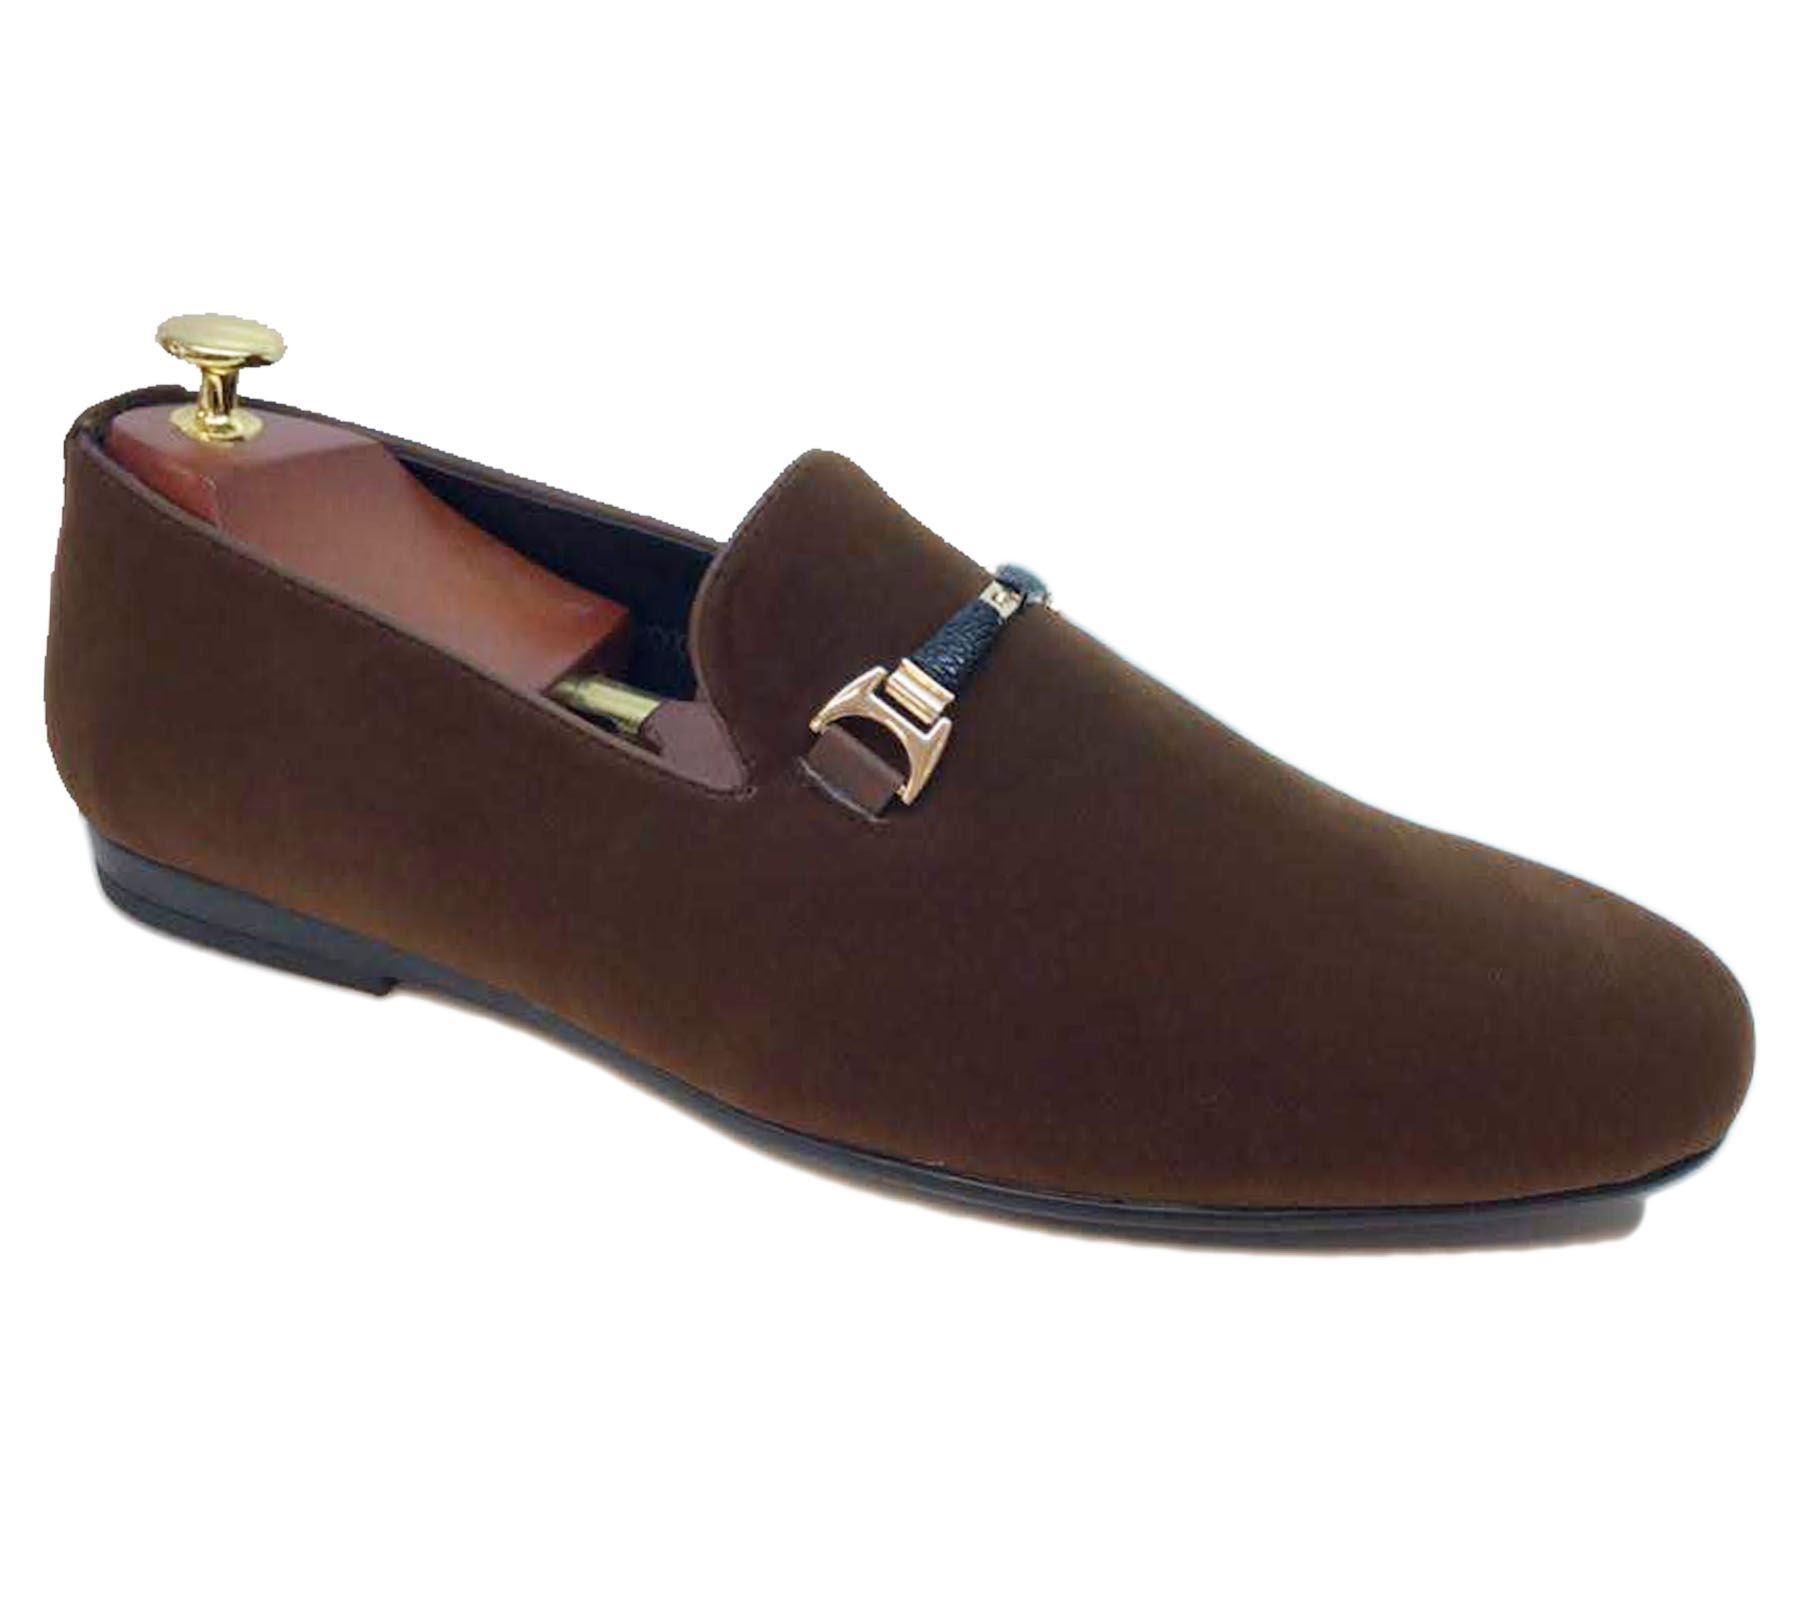 Mens-Loafers-Mocassin-Boat-Deck-Shoes-Flat-Slip-On-Driving-Casual-Smart-Pumps thumbnail 12